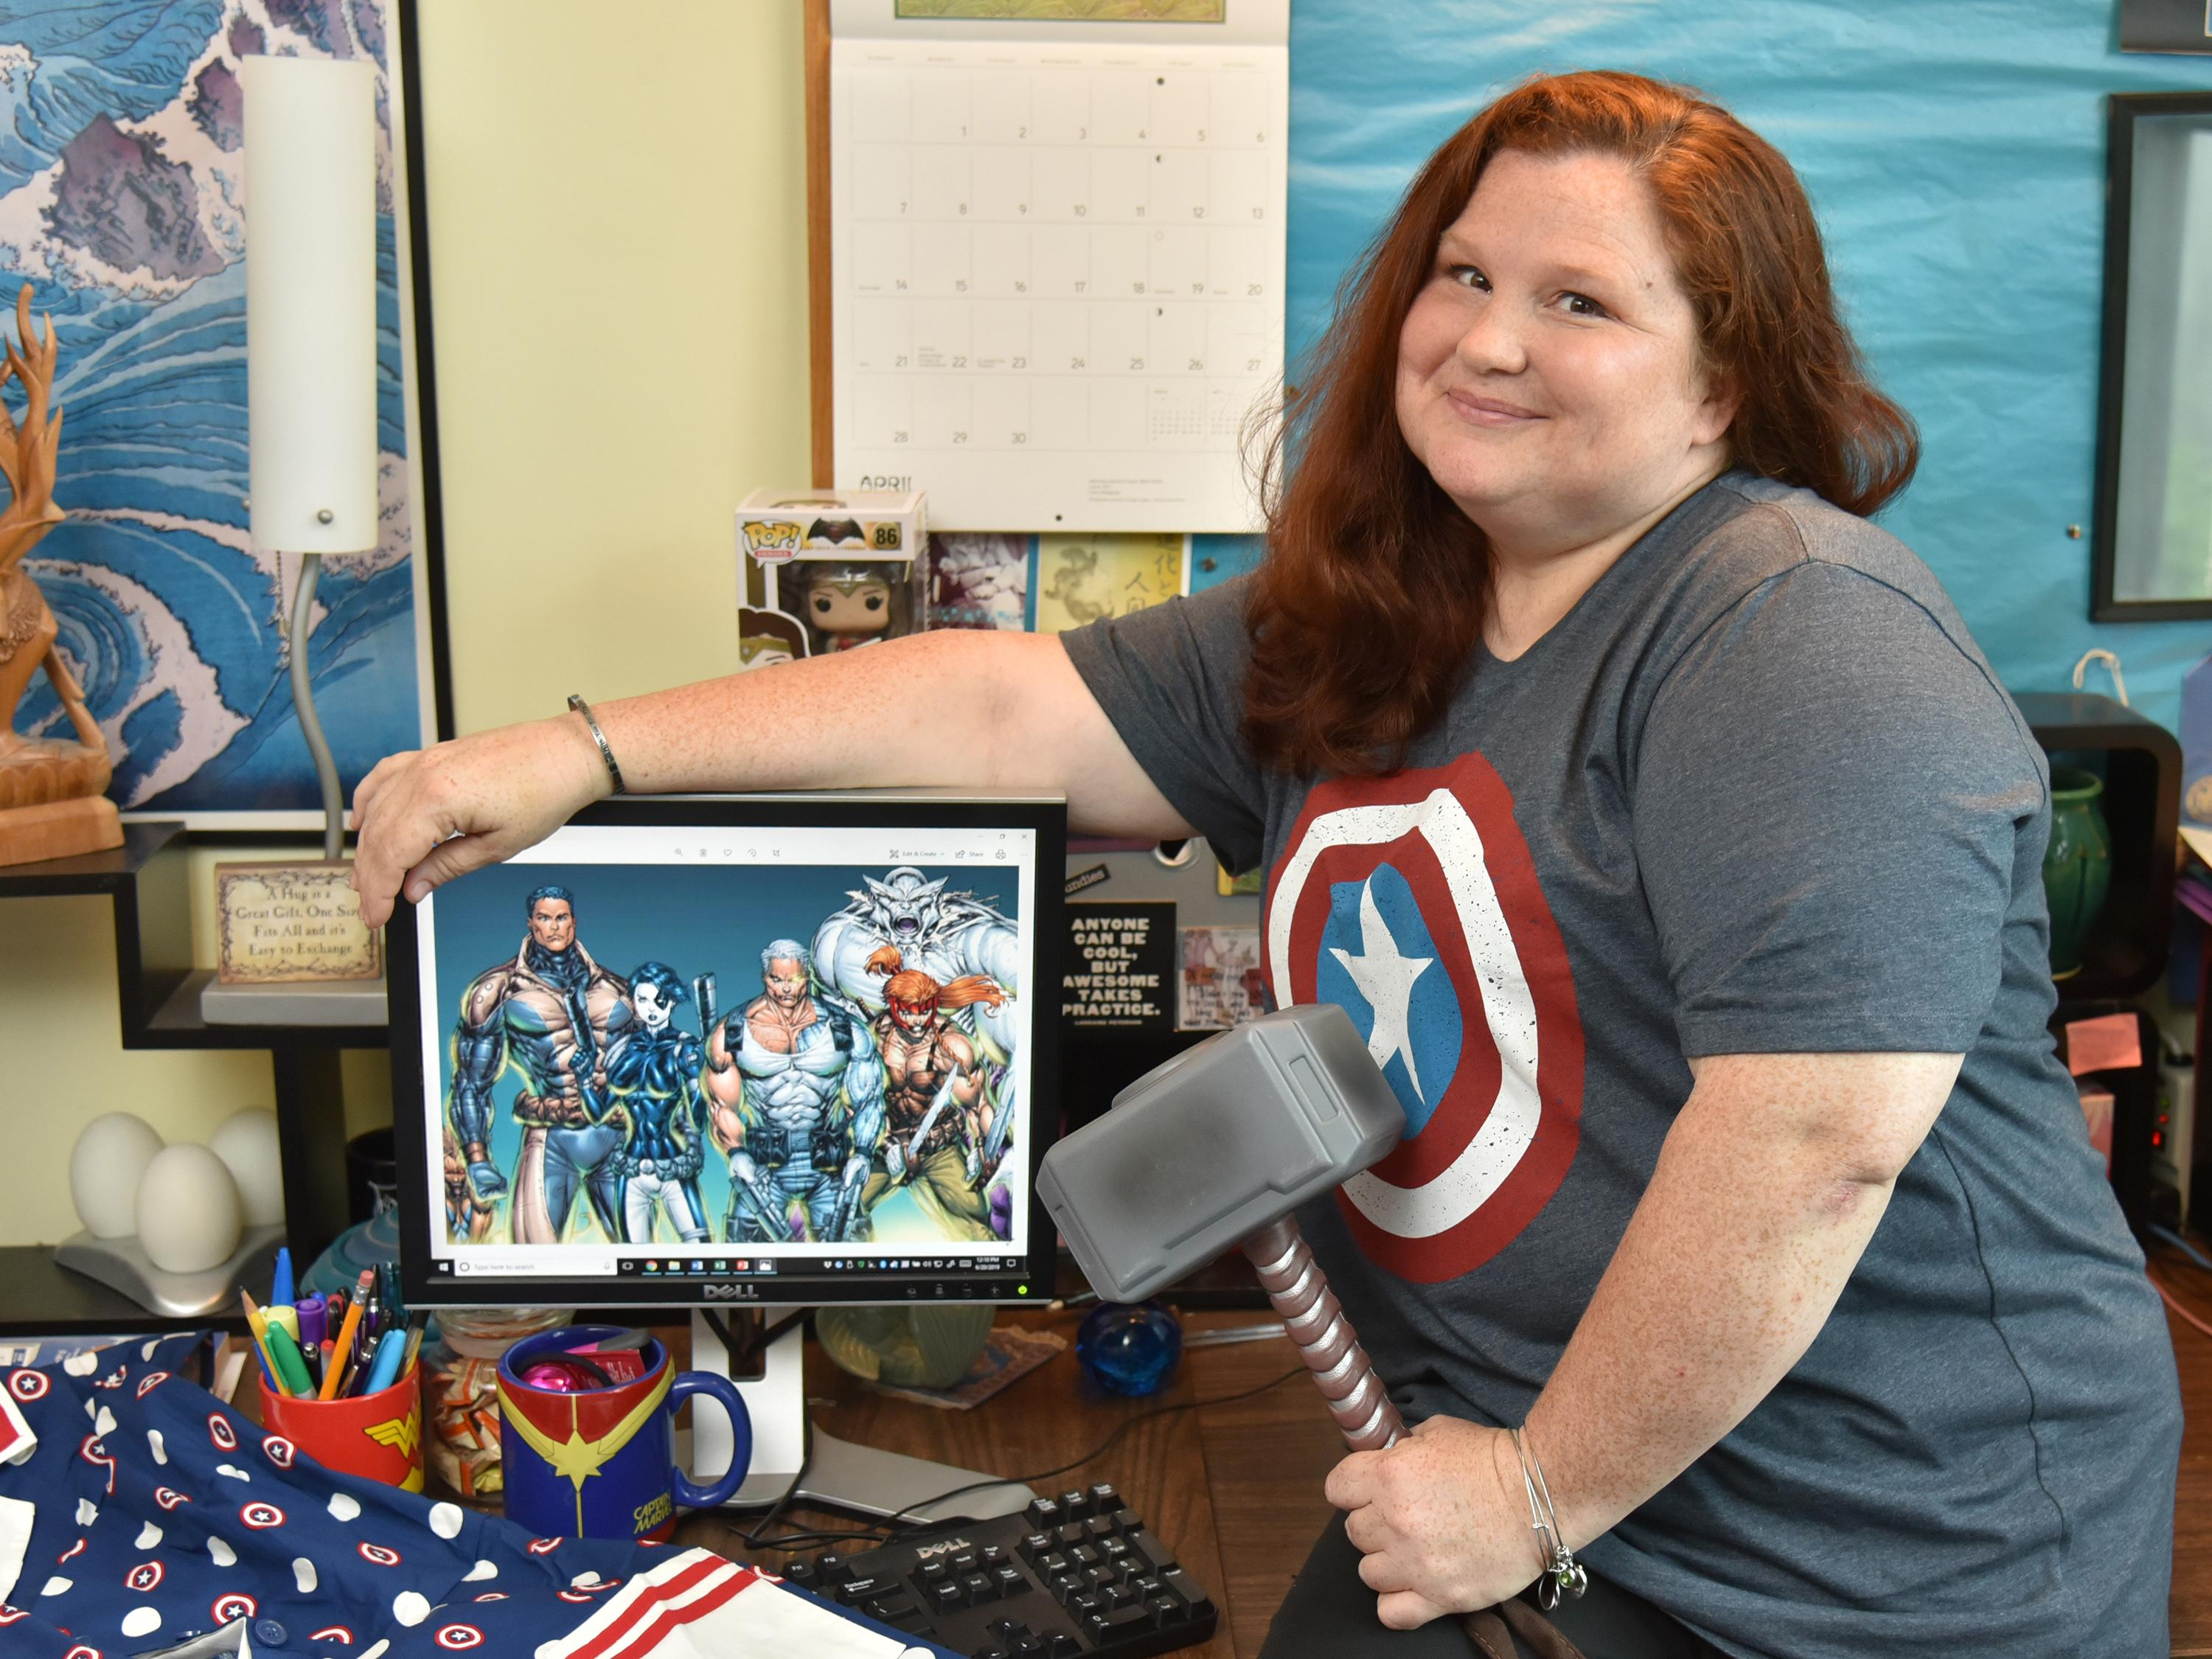 Becky Burch conducted research on physical dimensions of superheroes